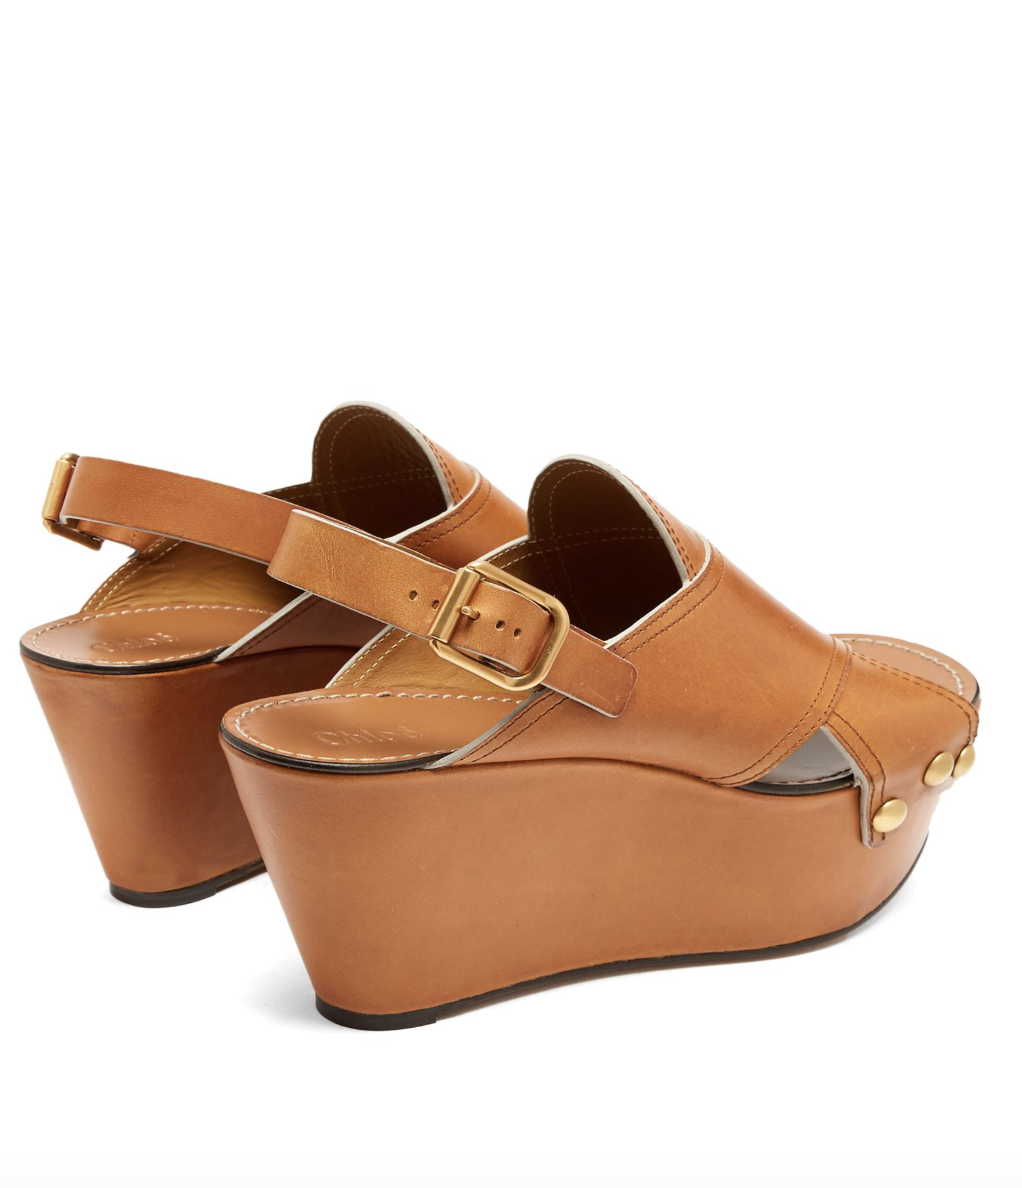 Chloe Mischa Brown Platform Leather Wedges shoes 37 37 37 7 ced7ba